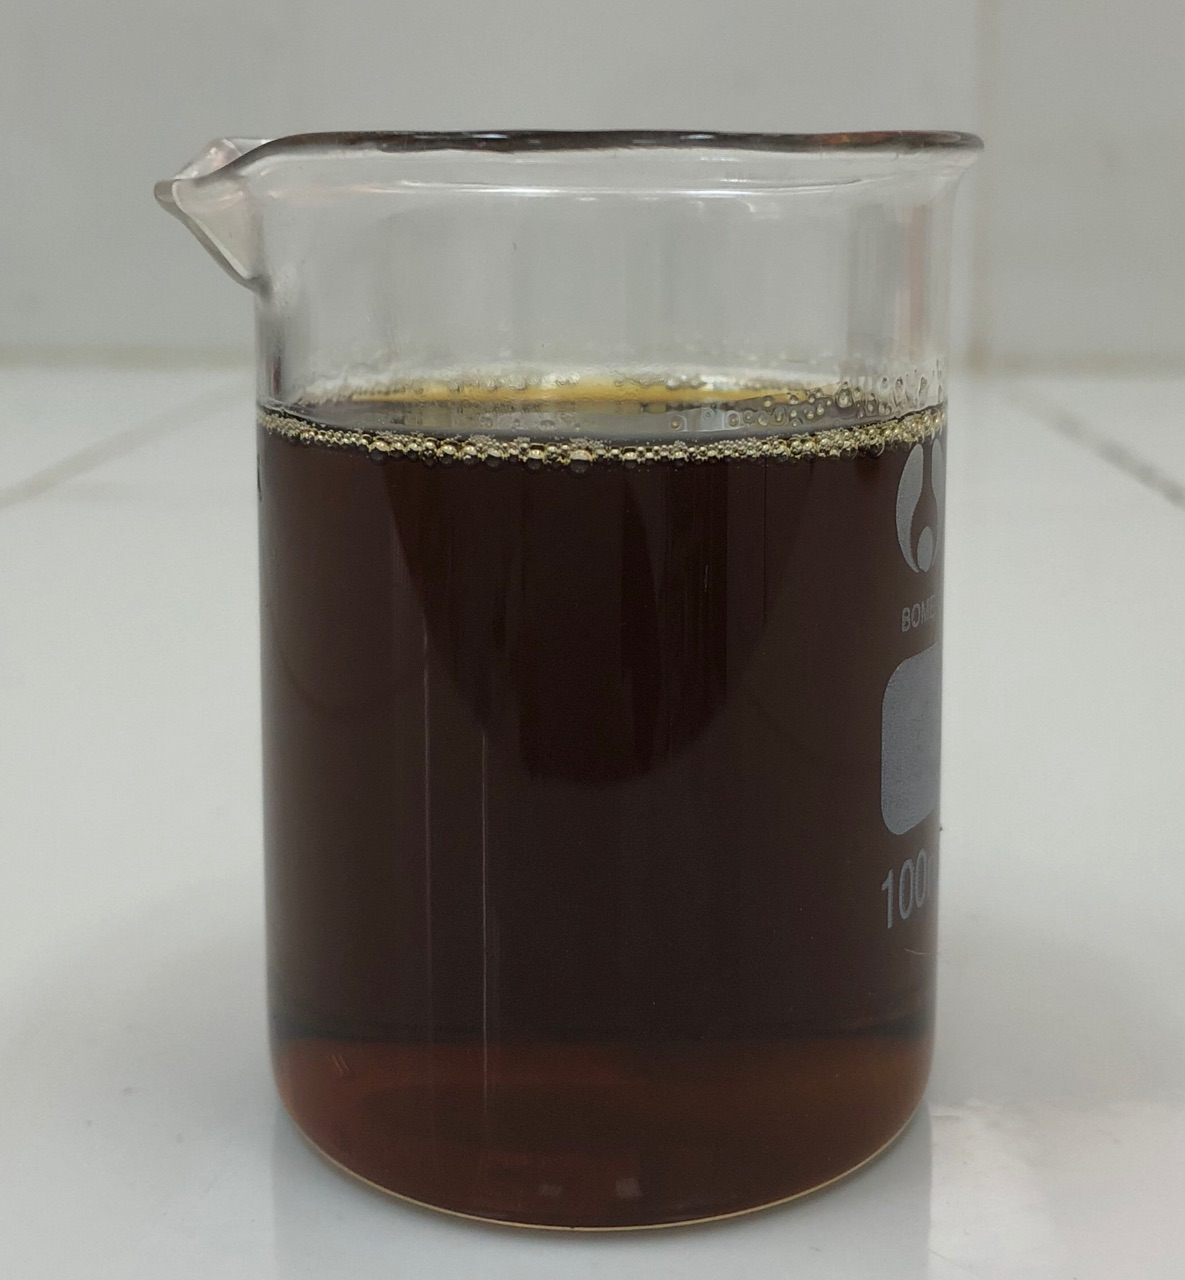 Crude Rice Bran Oil